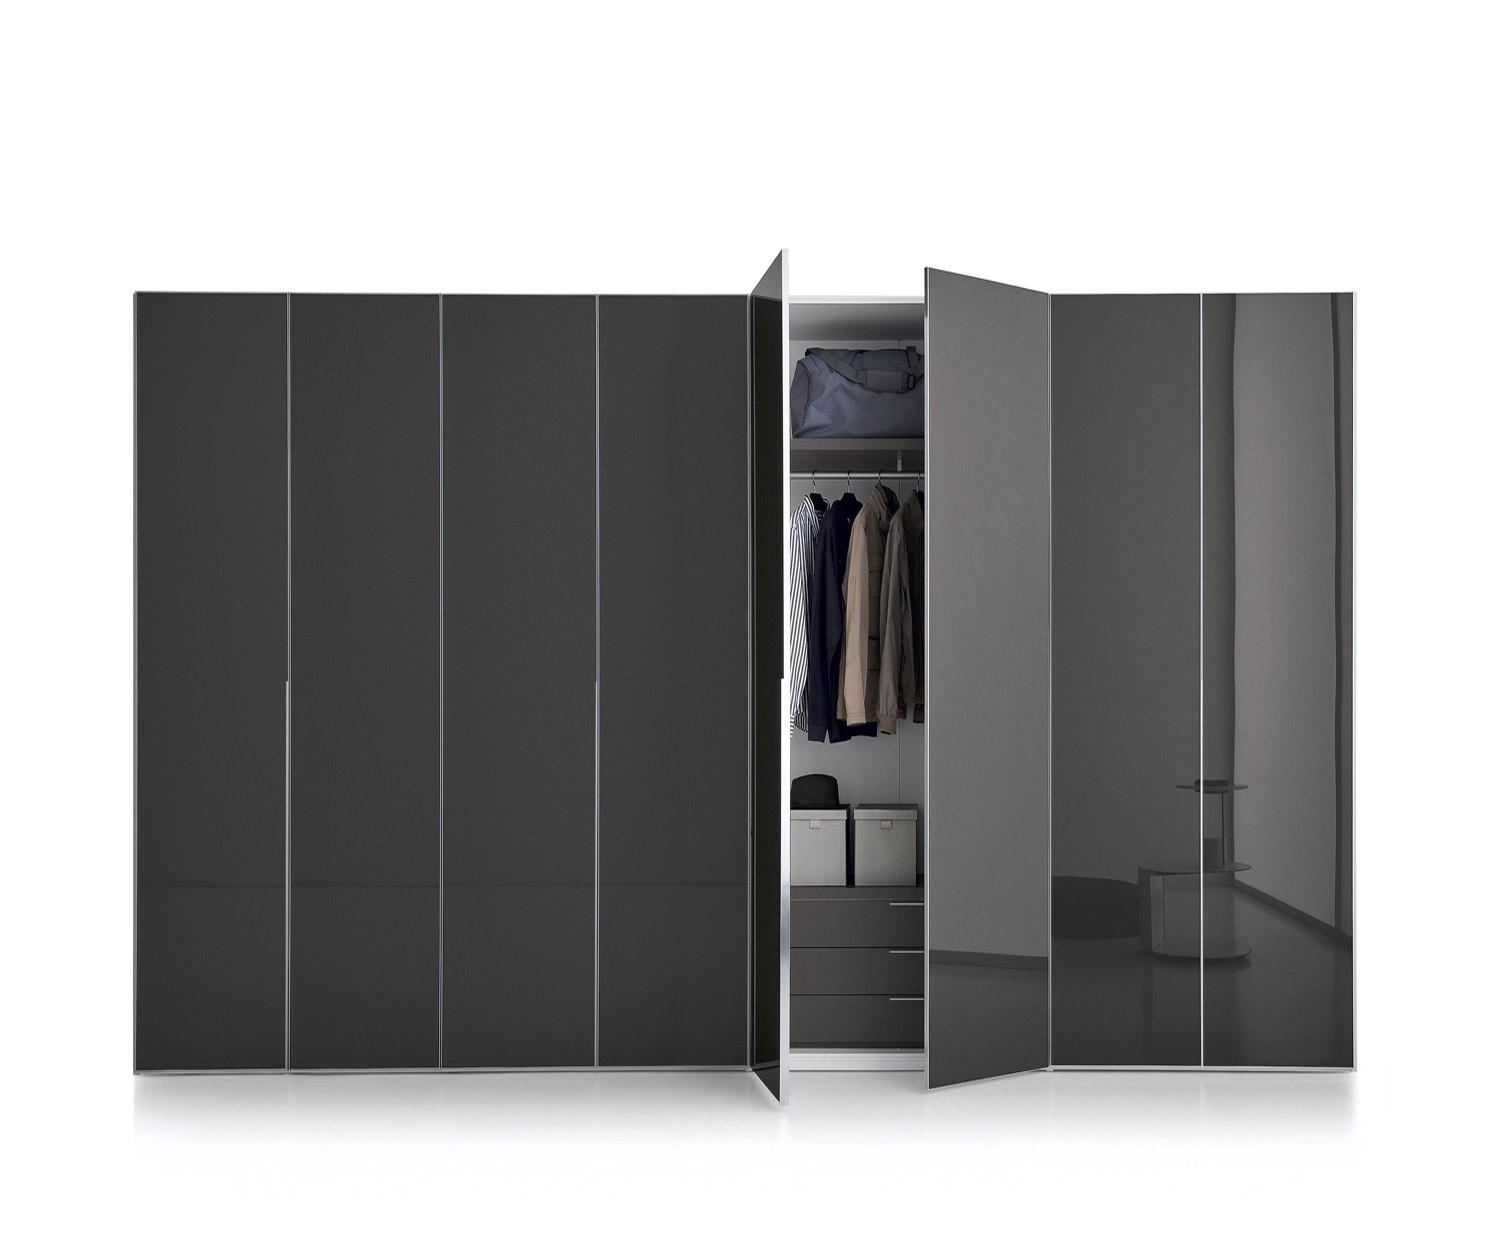 designer kleiderschr nke von 200 bis 400 cm breite. Black Bedroom Furniture Sets. Home Design Ideas